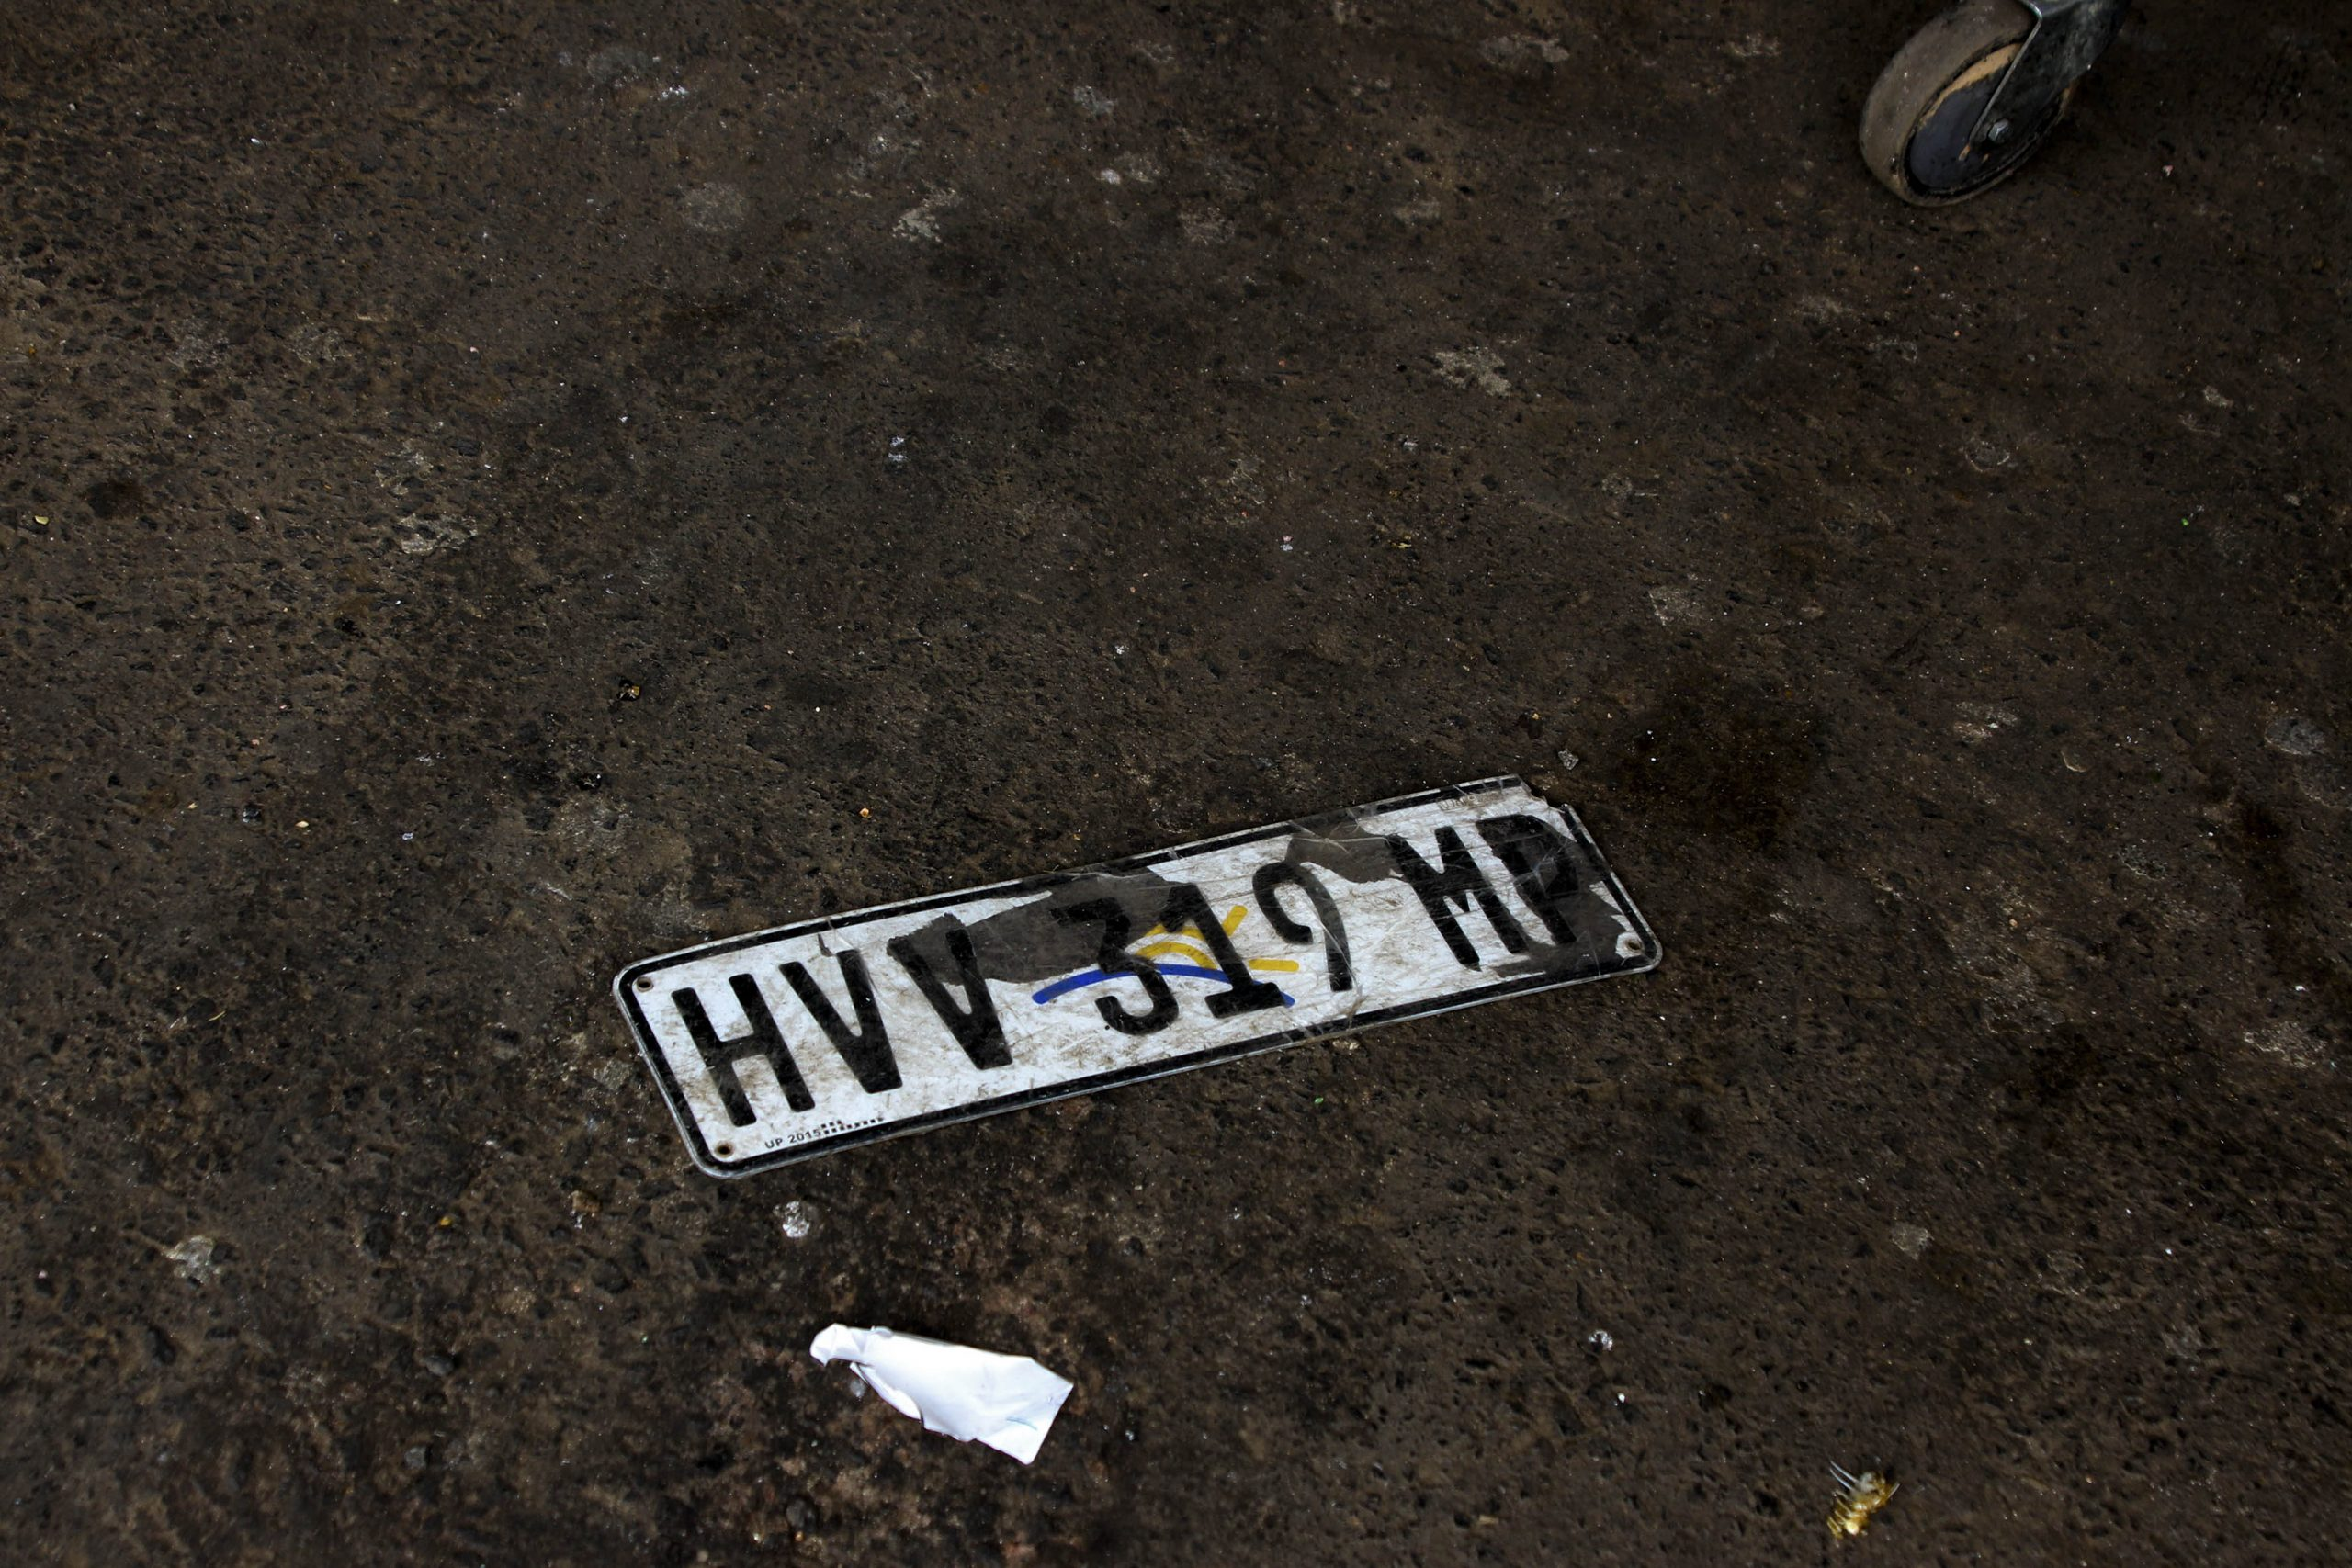 8 June 2020: A discarded number plate lies on the ground at the taxi rank in Mkhondo. (Photograph by Magnificent Mndebele)